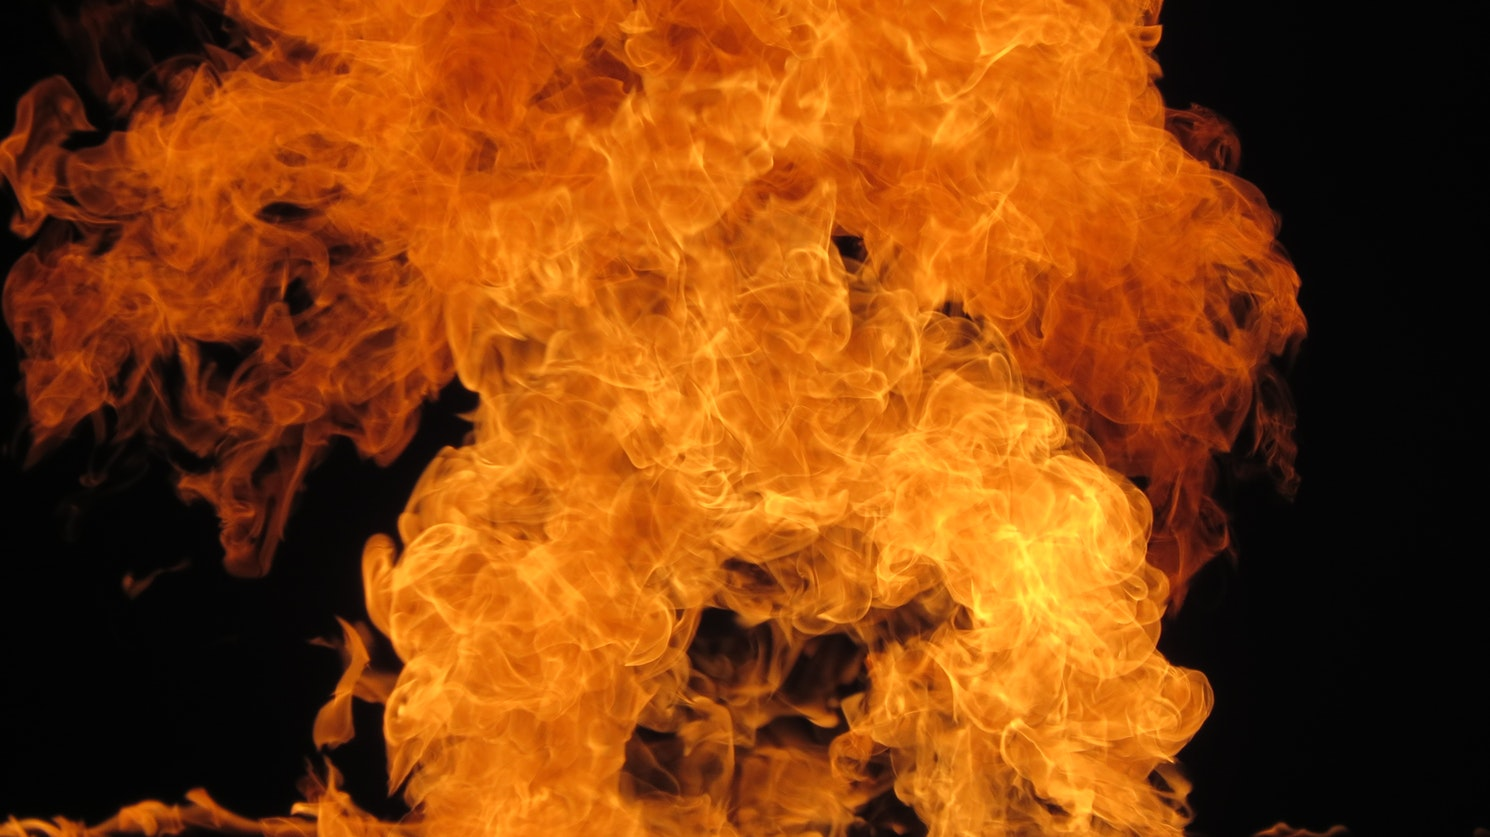 Large Fire blast from work place hazards